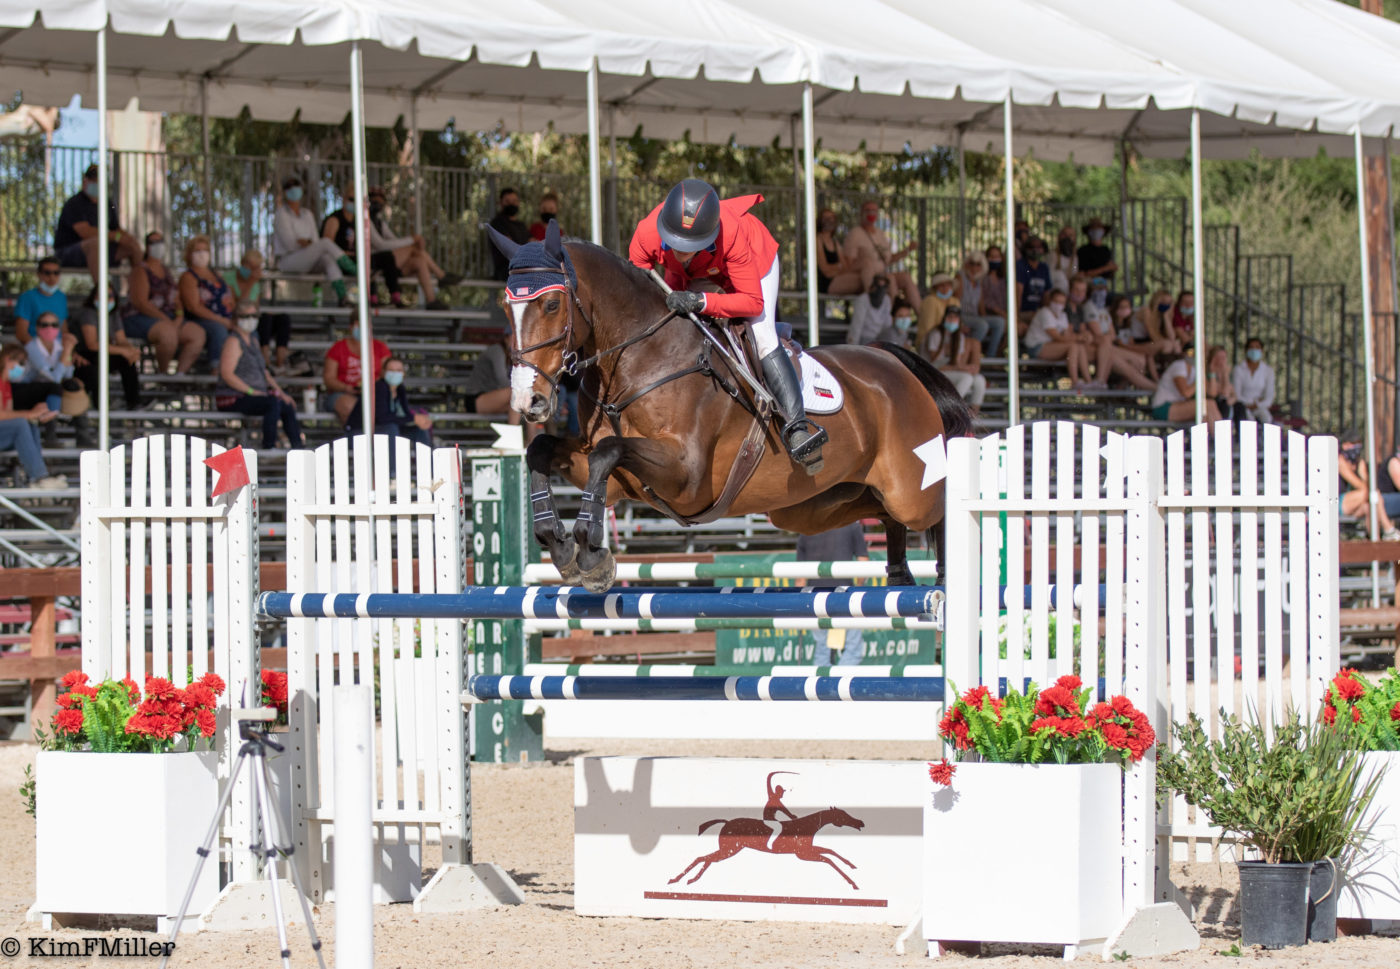 CCI4*-L - 2nd - Tamie Smith and Passepartout